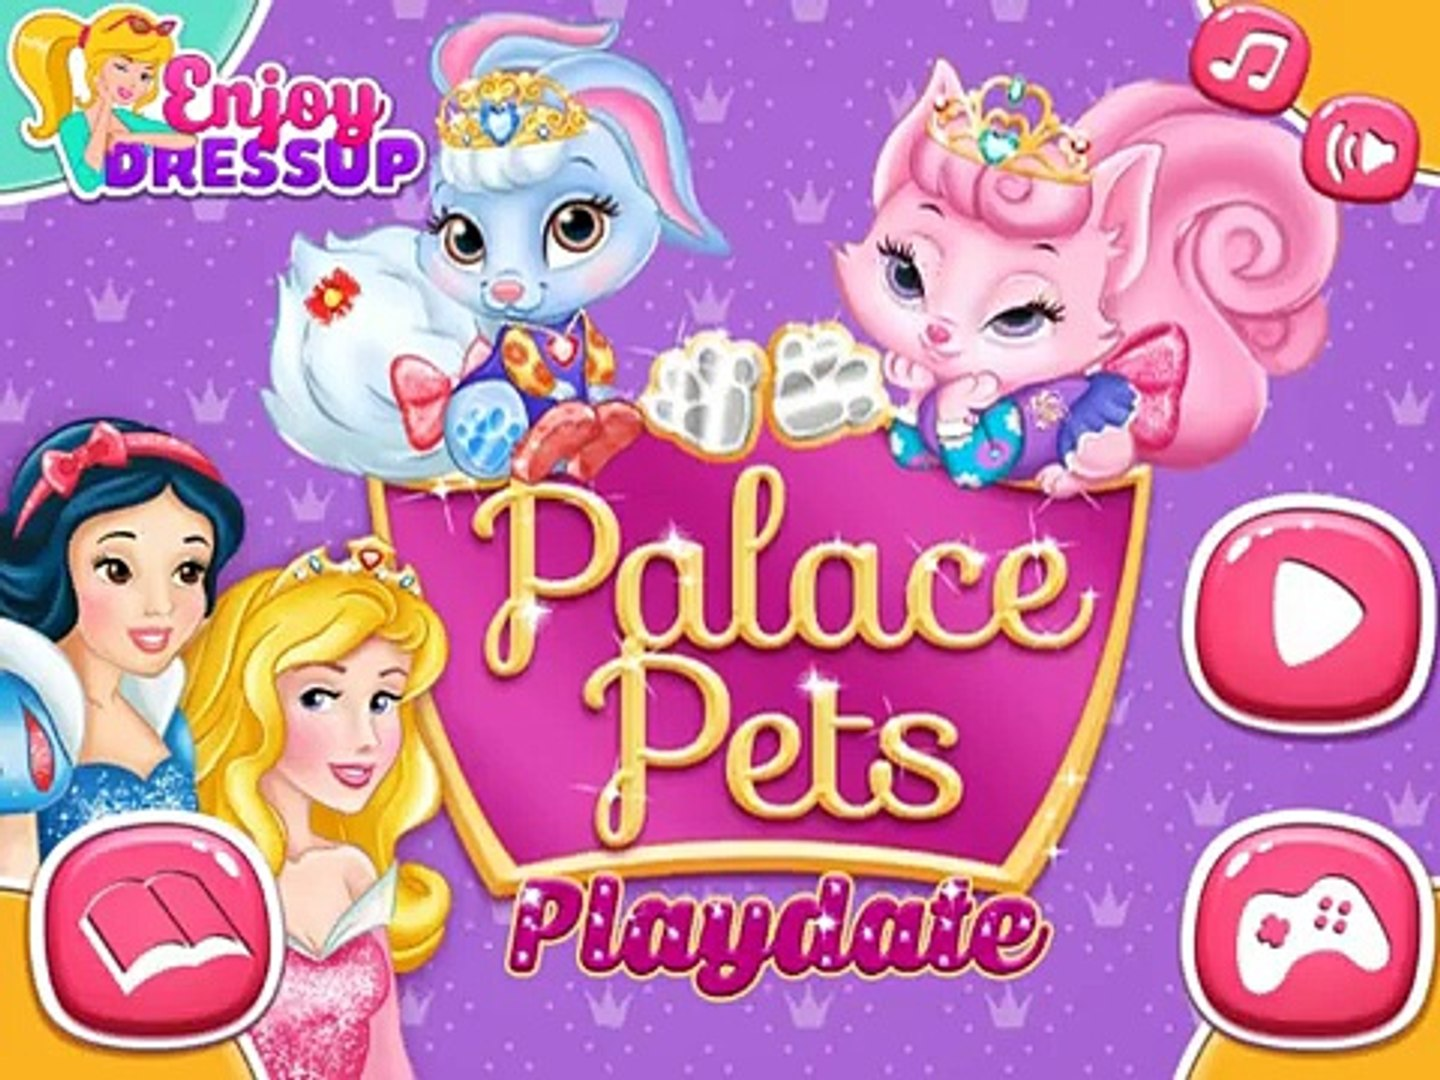 Palace Pets Playdate - Best Baby Games For Kids